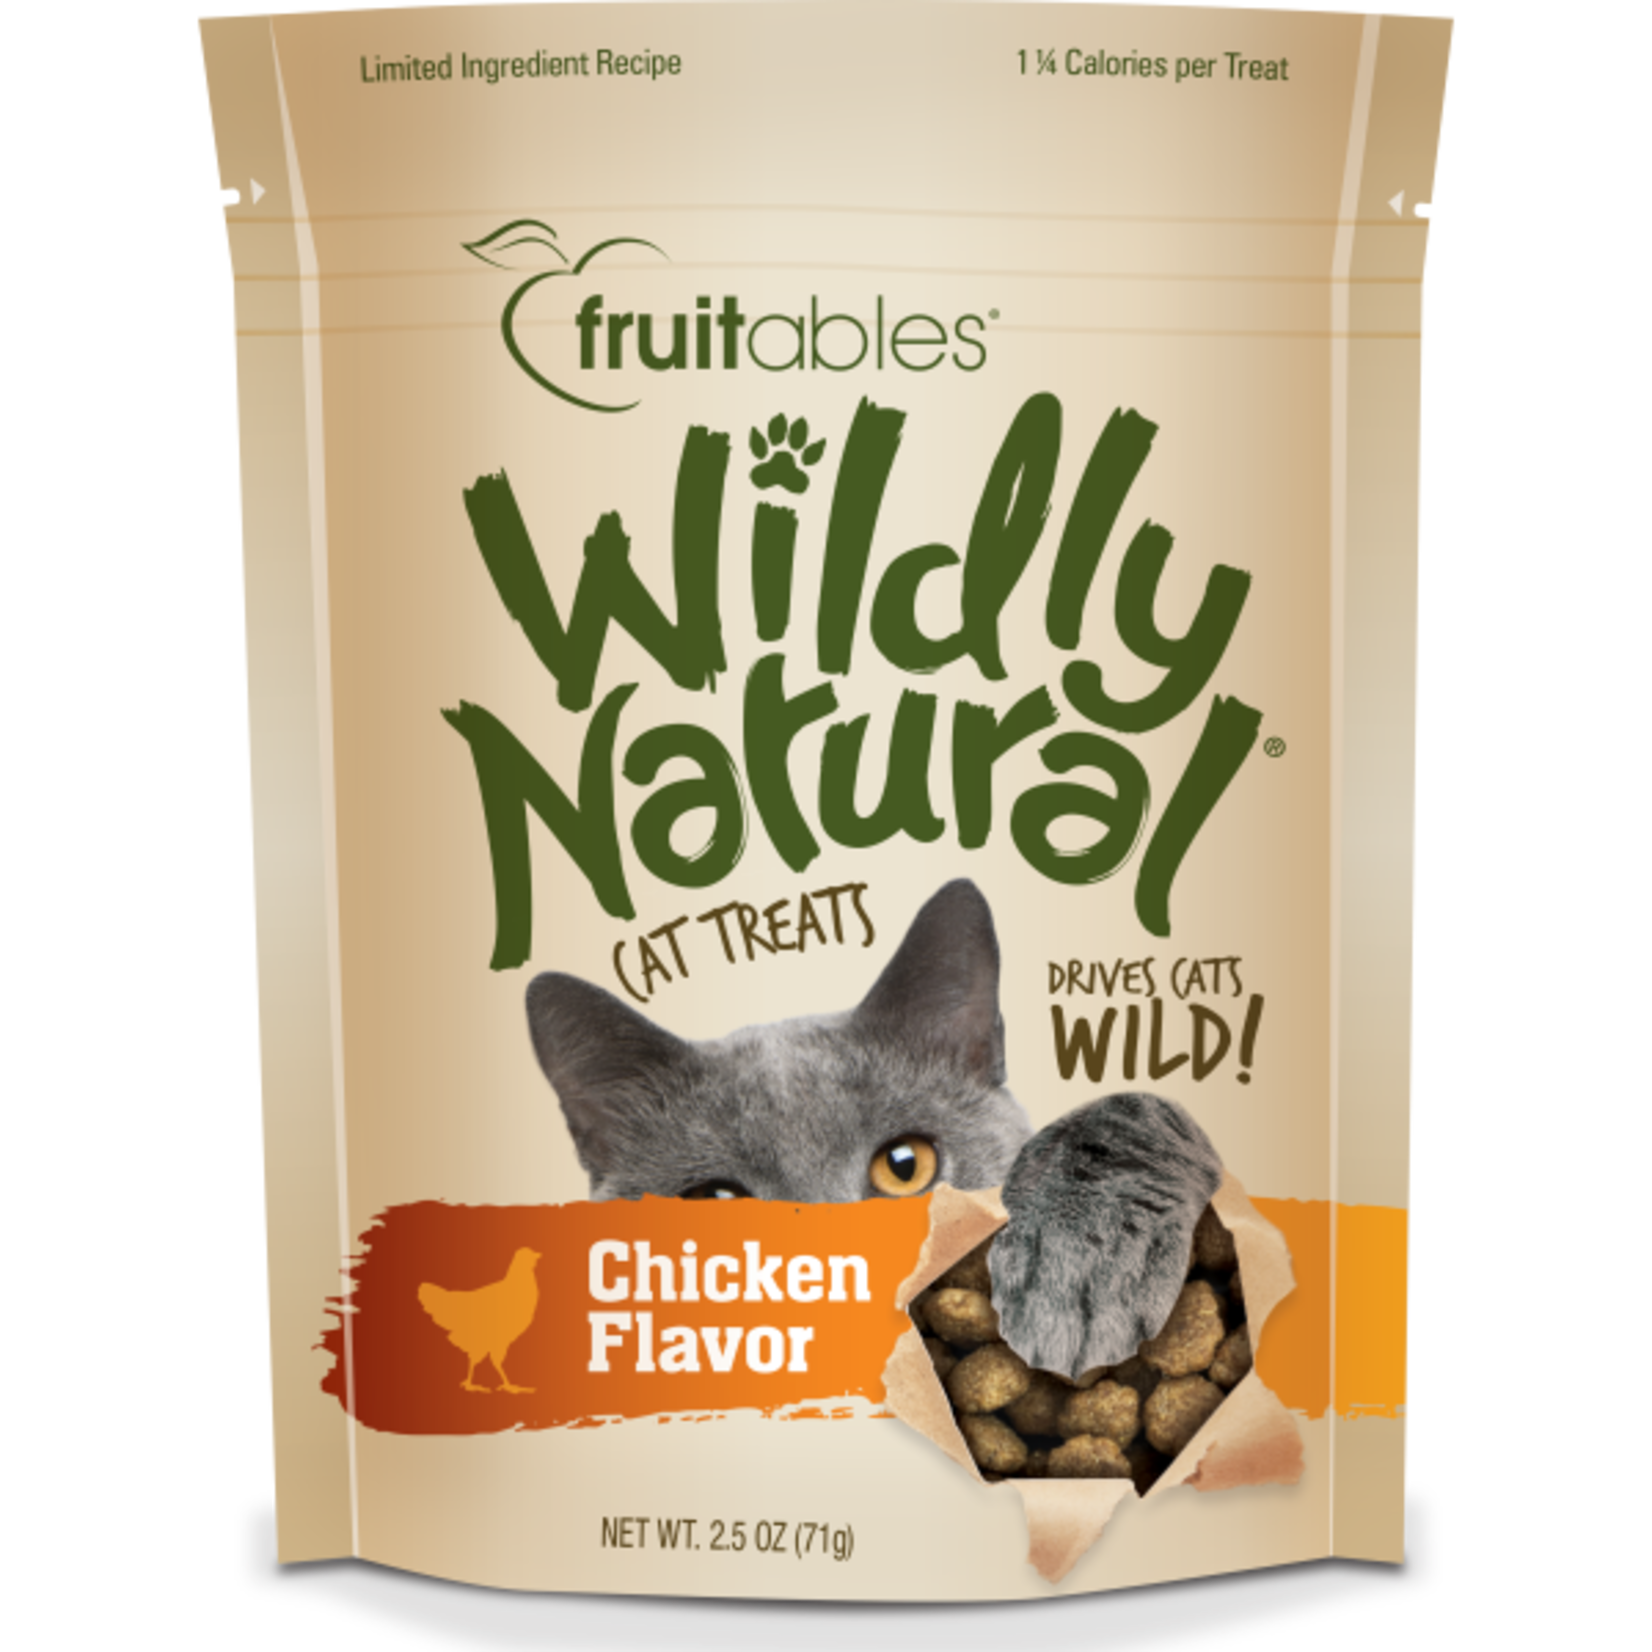 Wildly Natural Cat treat 71 g